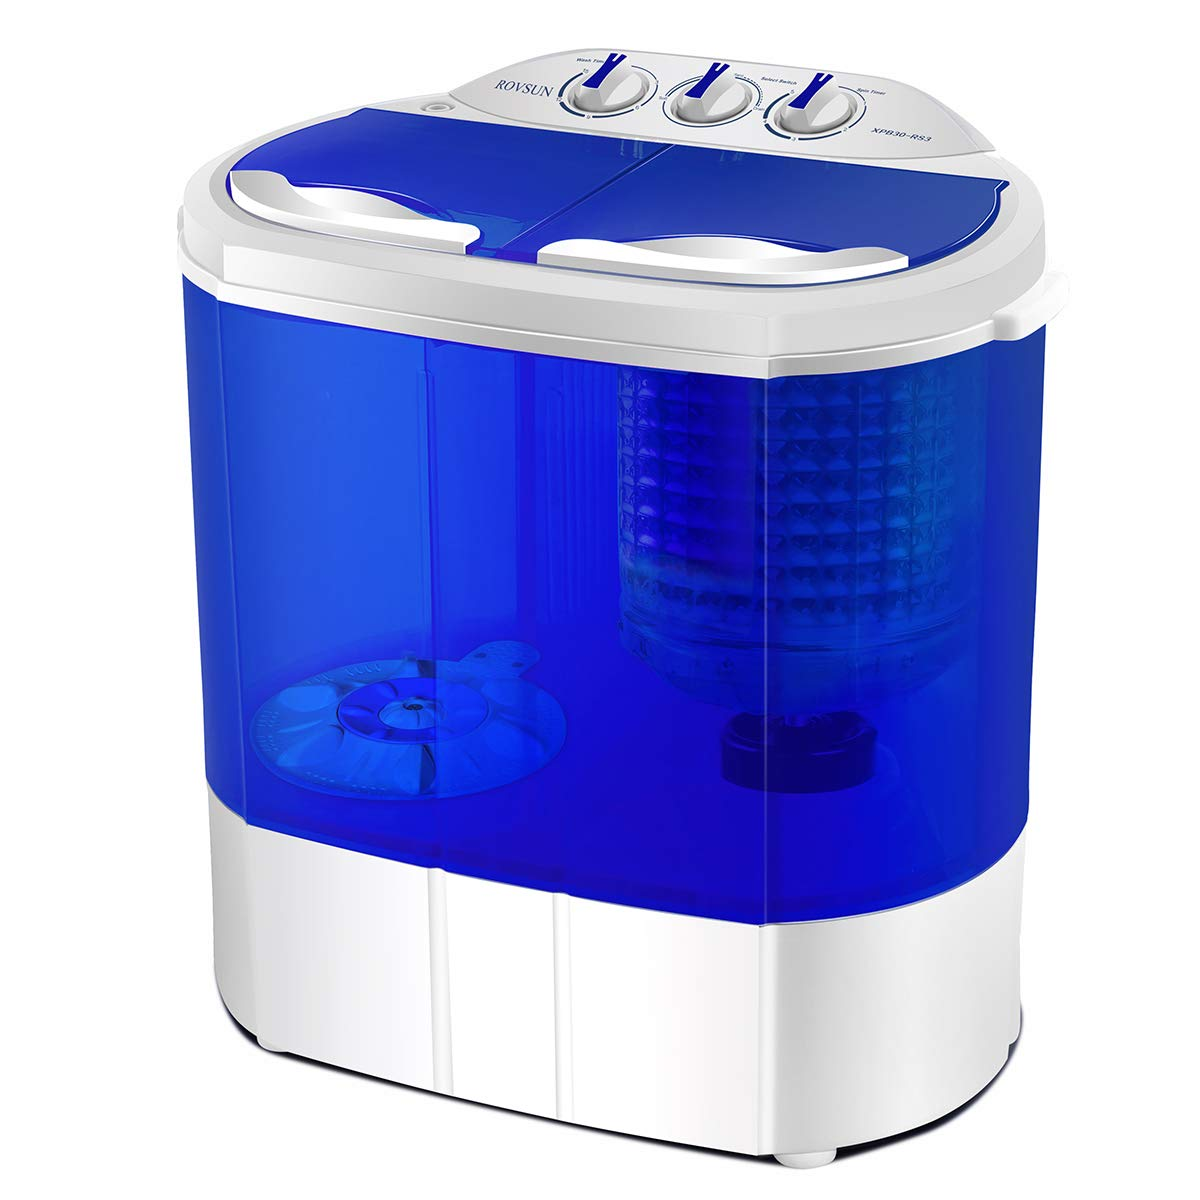 ROVSUN 10 LBS Portable Twin Tub Washing Machine, Electric Compact Mini Washer, Energy/Save Space, Laundry Spin Cycle w/Hose, Great for Home RV Camping Dorms College Room, 21.8''L x 14.8''W x 23.2''H